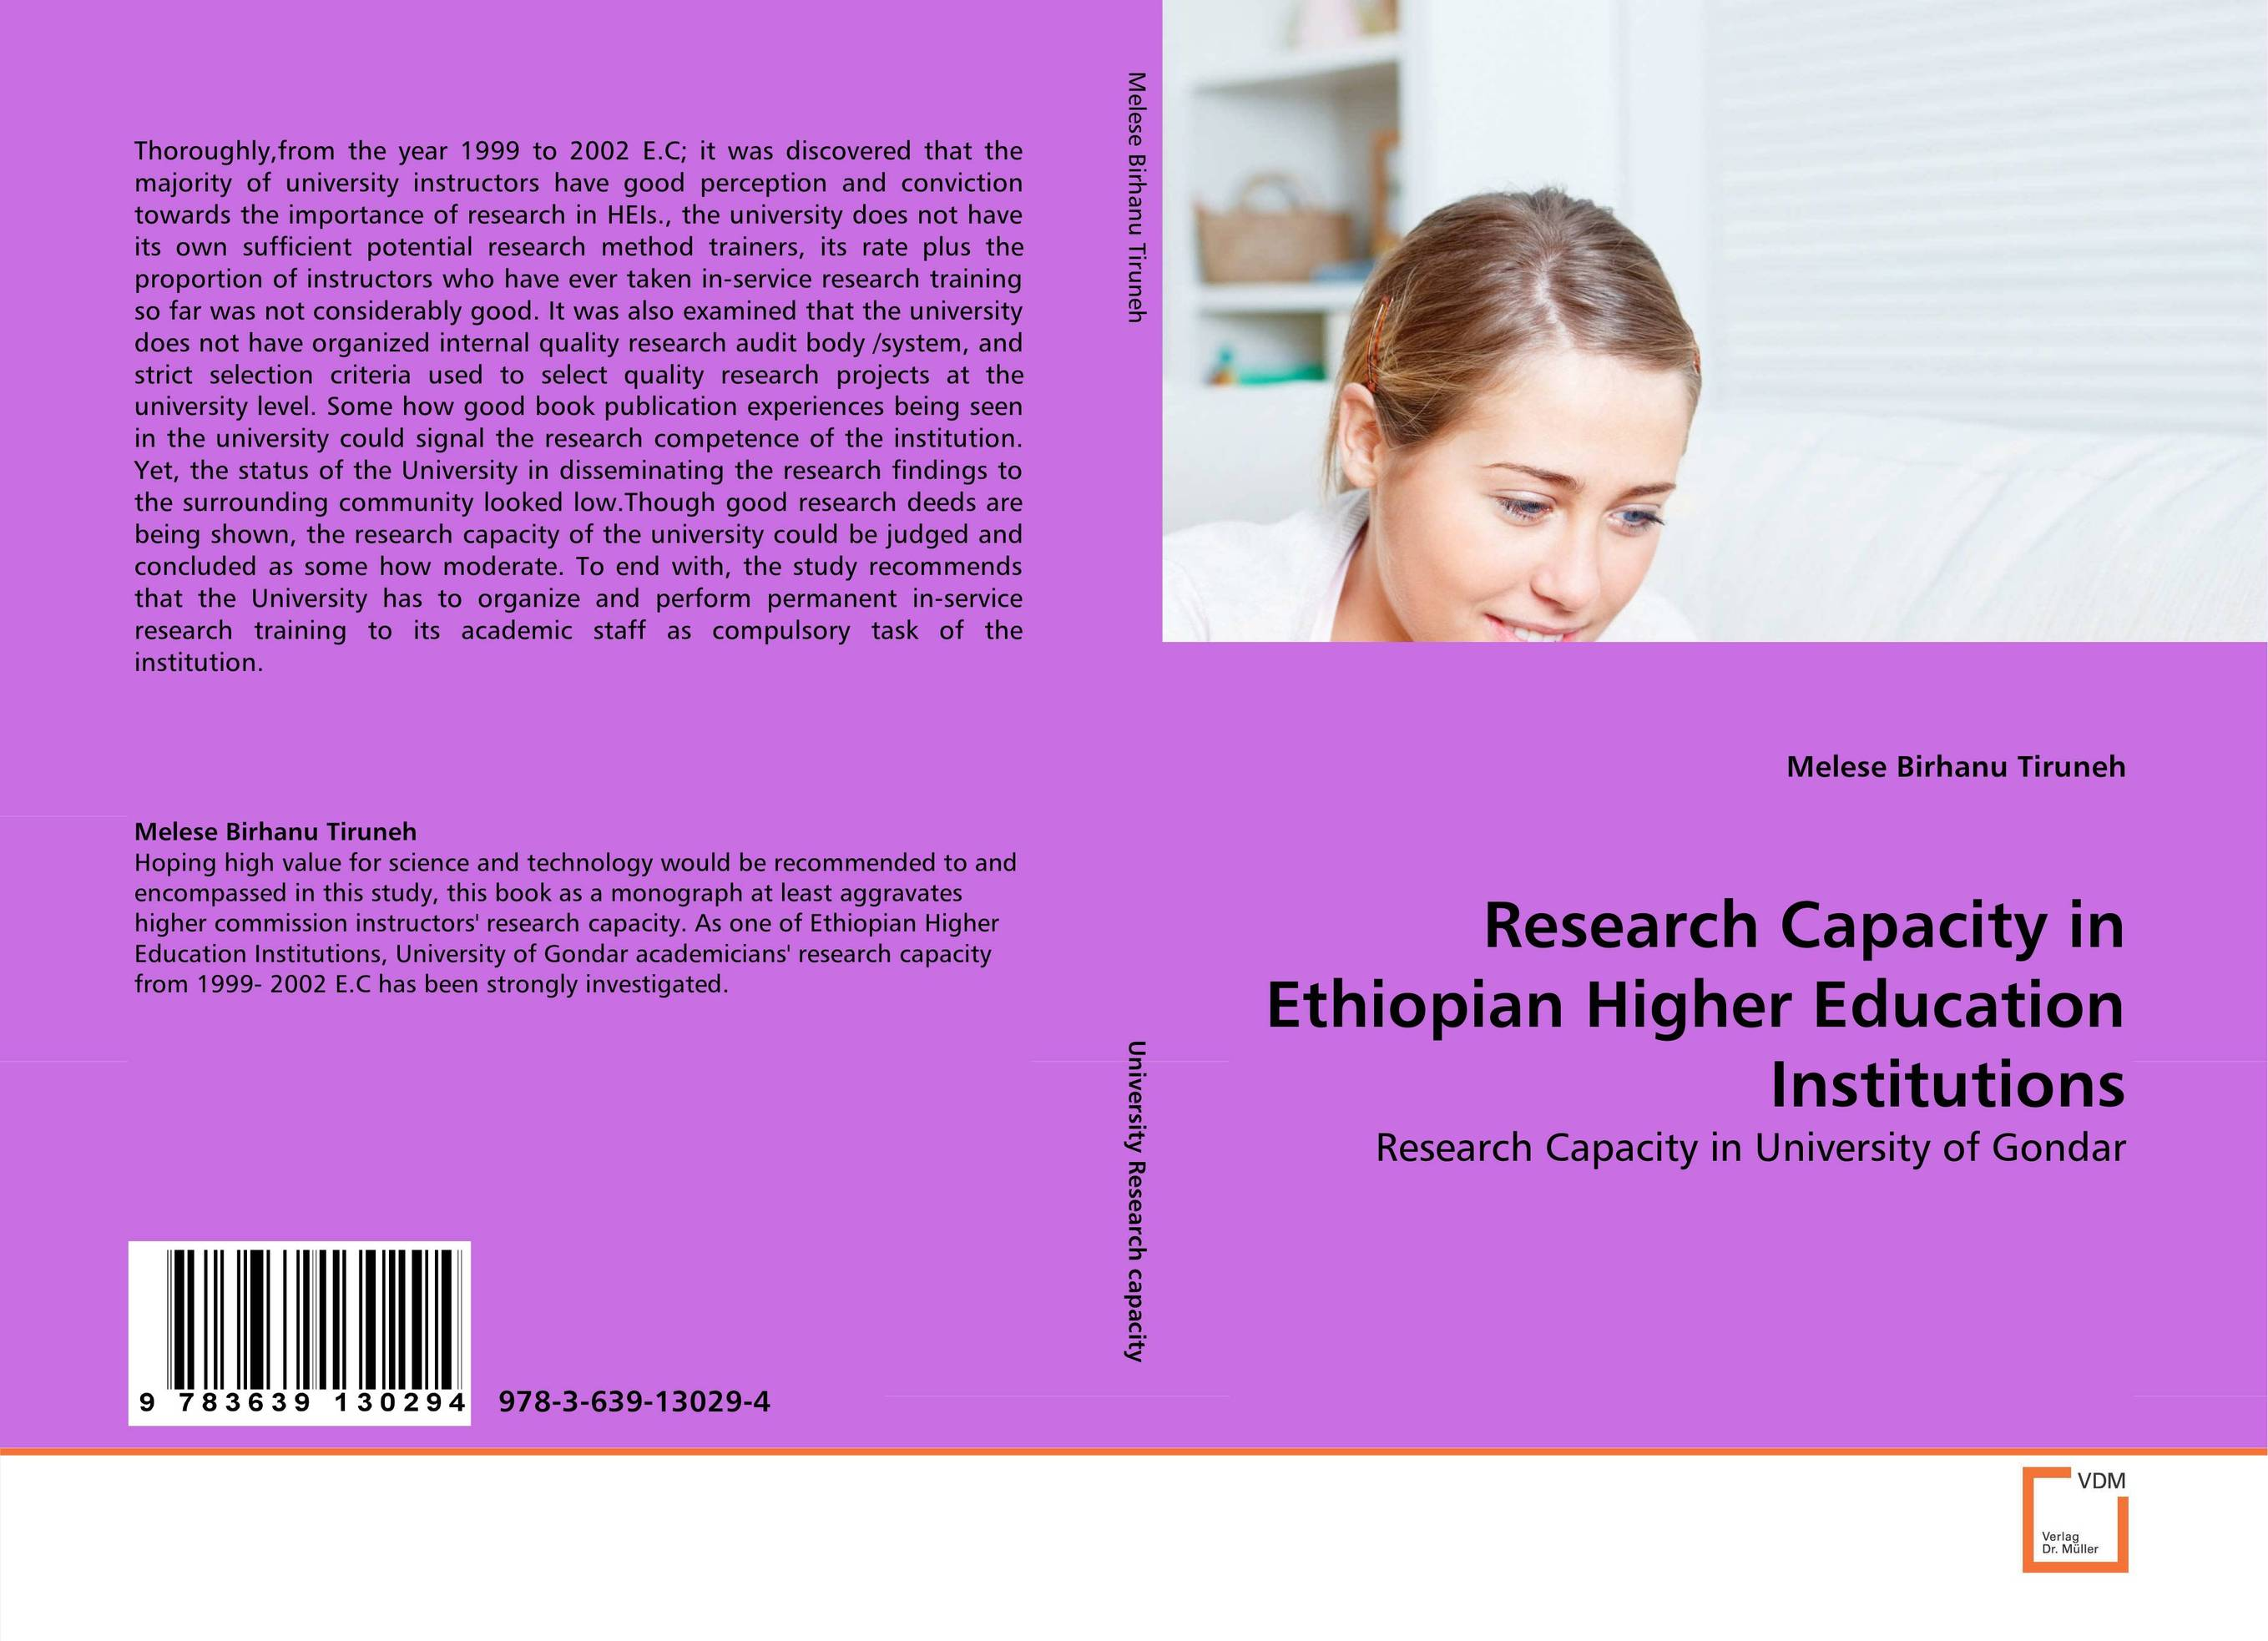 Research Capacity in Ethiopian Higher Education Institutions the salmon who dared to leap higher